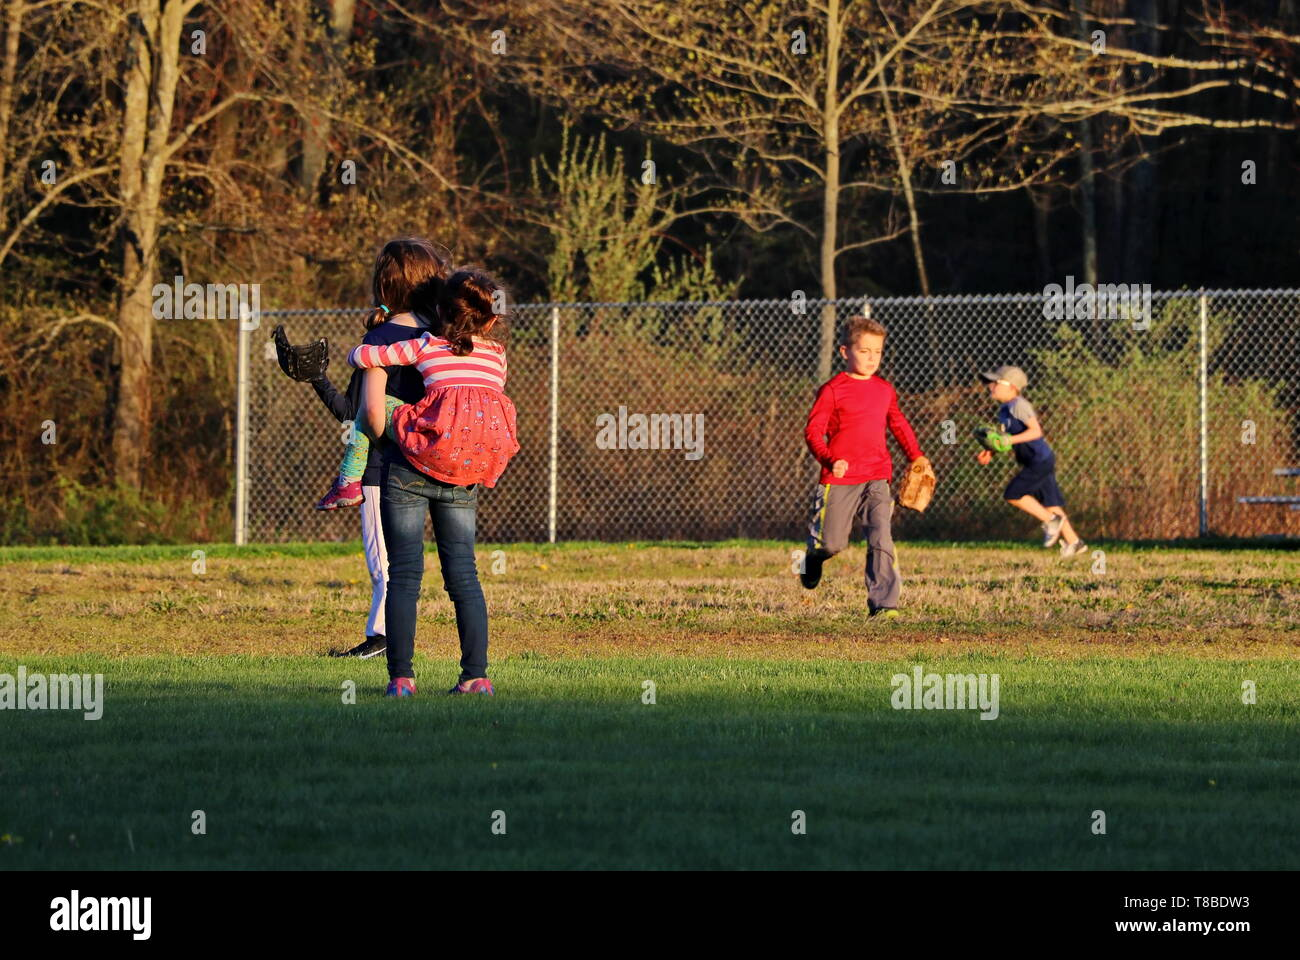 older sister gives youngest a piggy-back while they both look at boys playing baseball - Stock Image